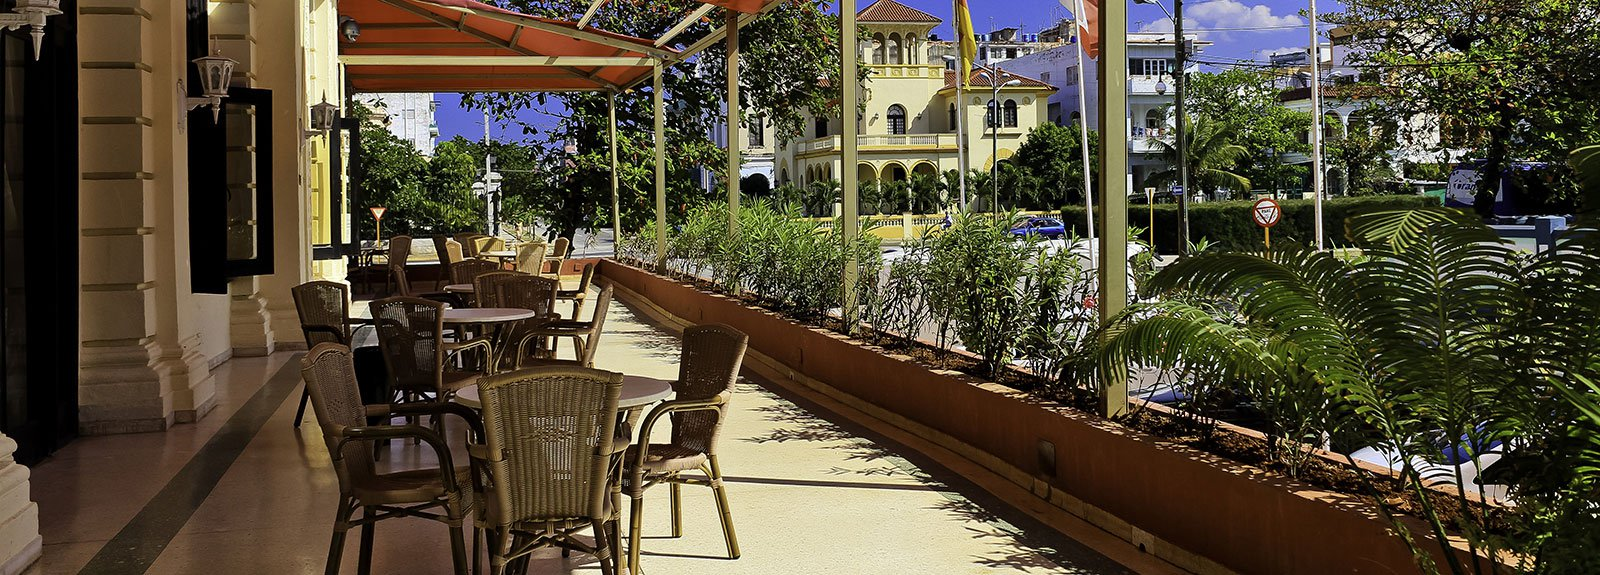 Presidente hotel with red roof, terrace